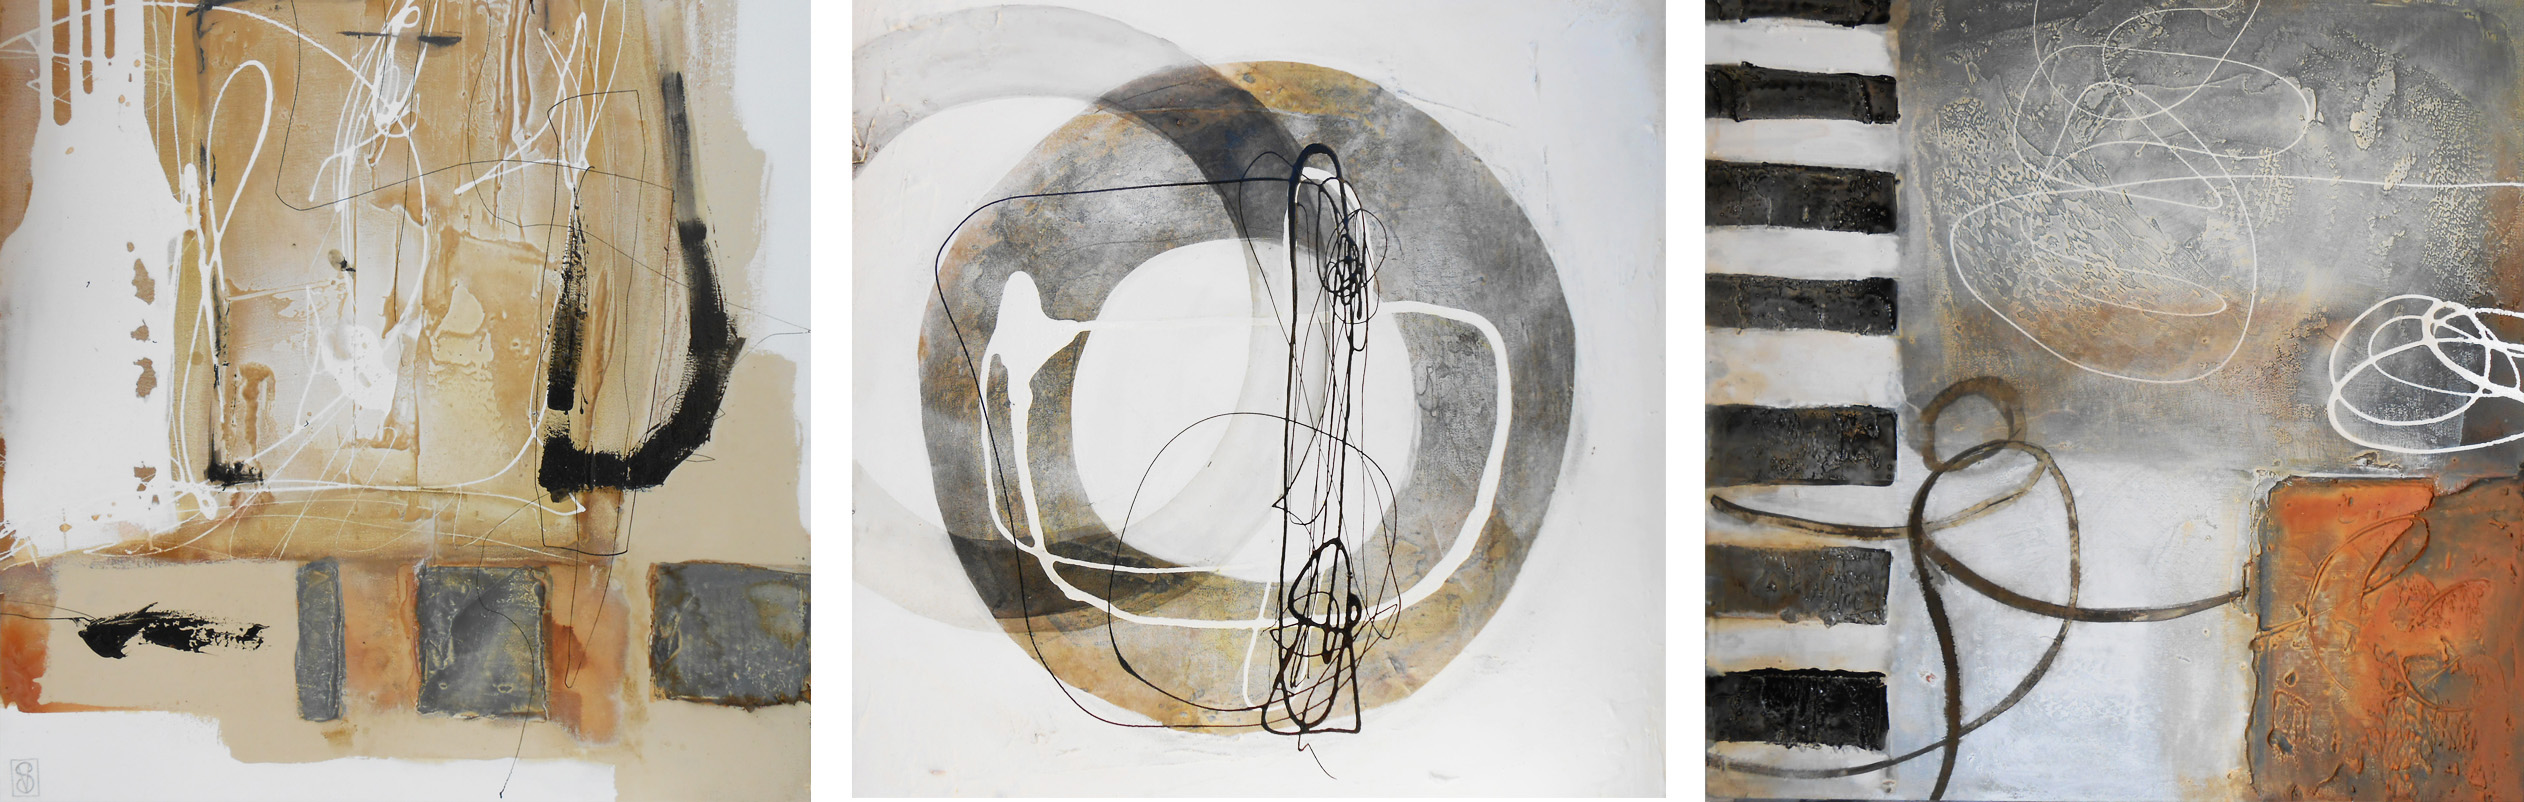 Vicky Sanders Abstract - Neutral Trip